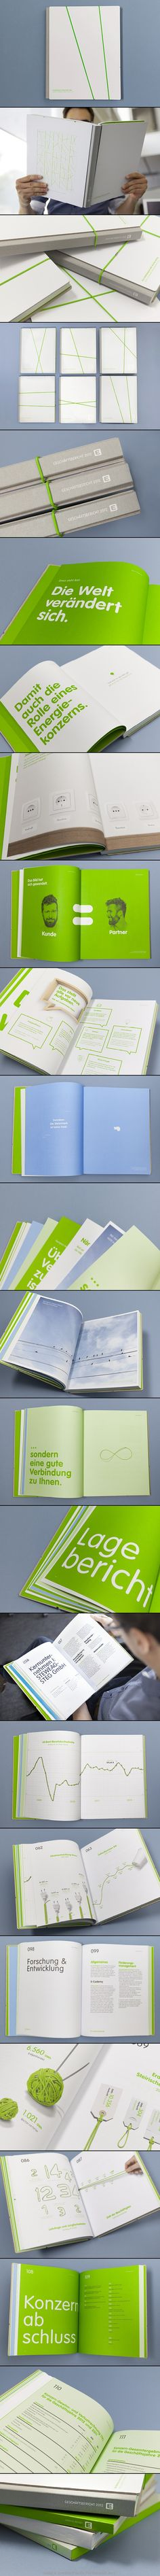 Steiermark Annual Report | by Moodley Brand Identity. Use of single primary colour to unify style